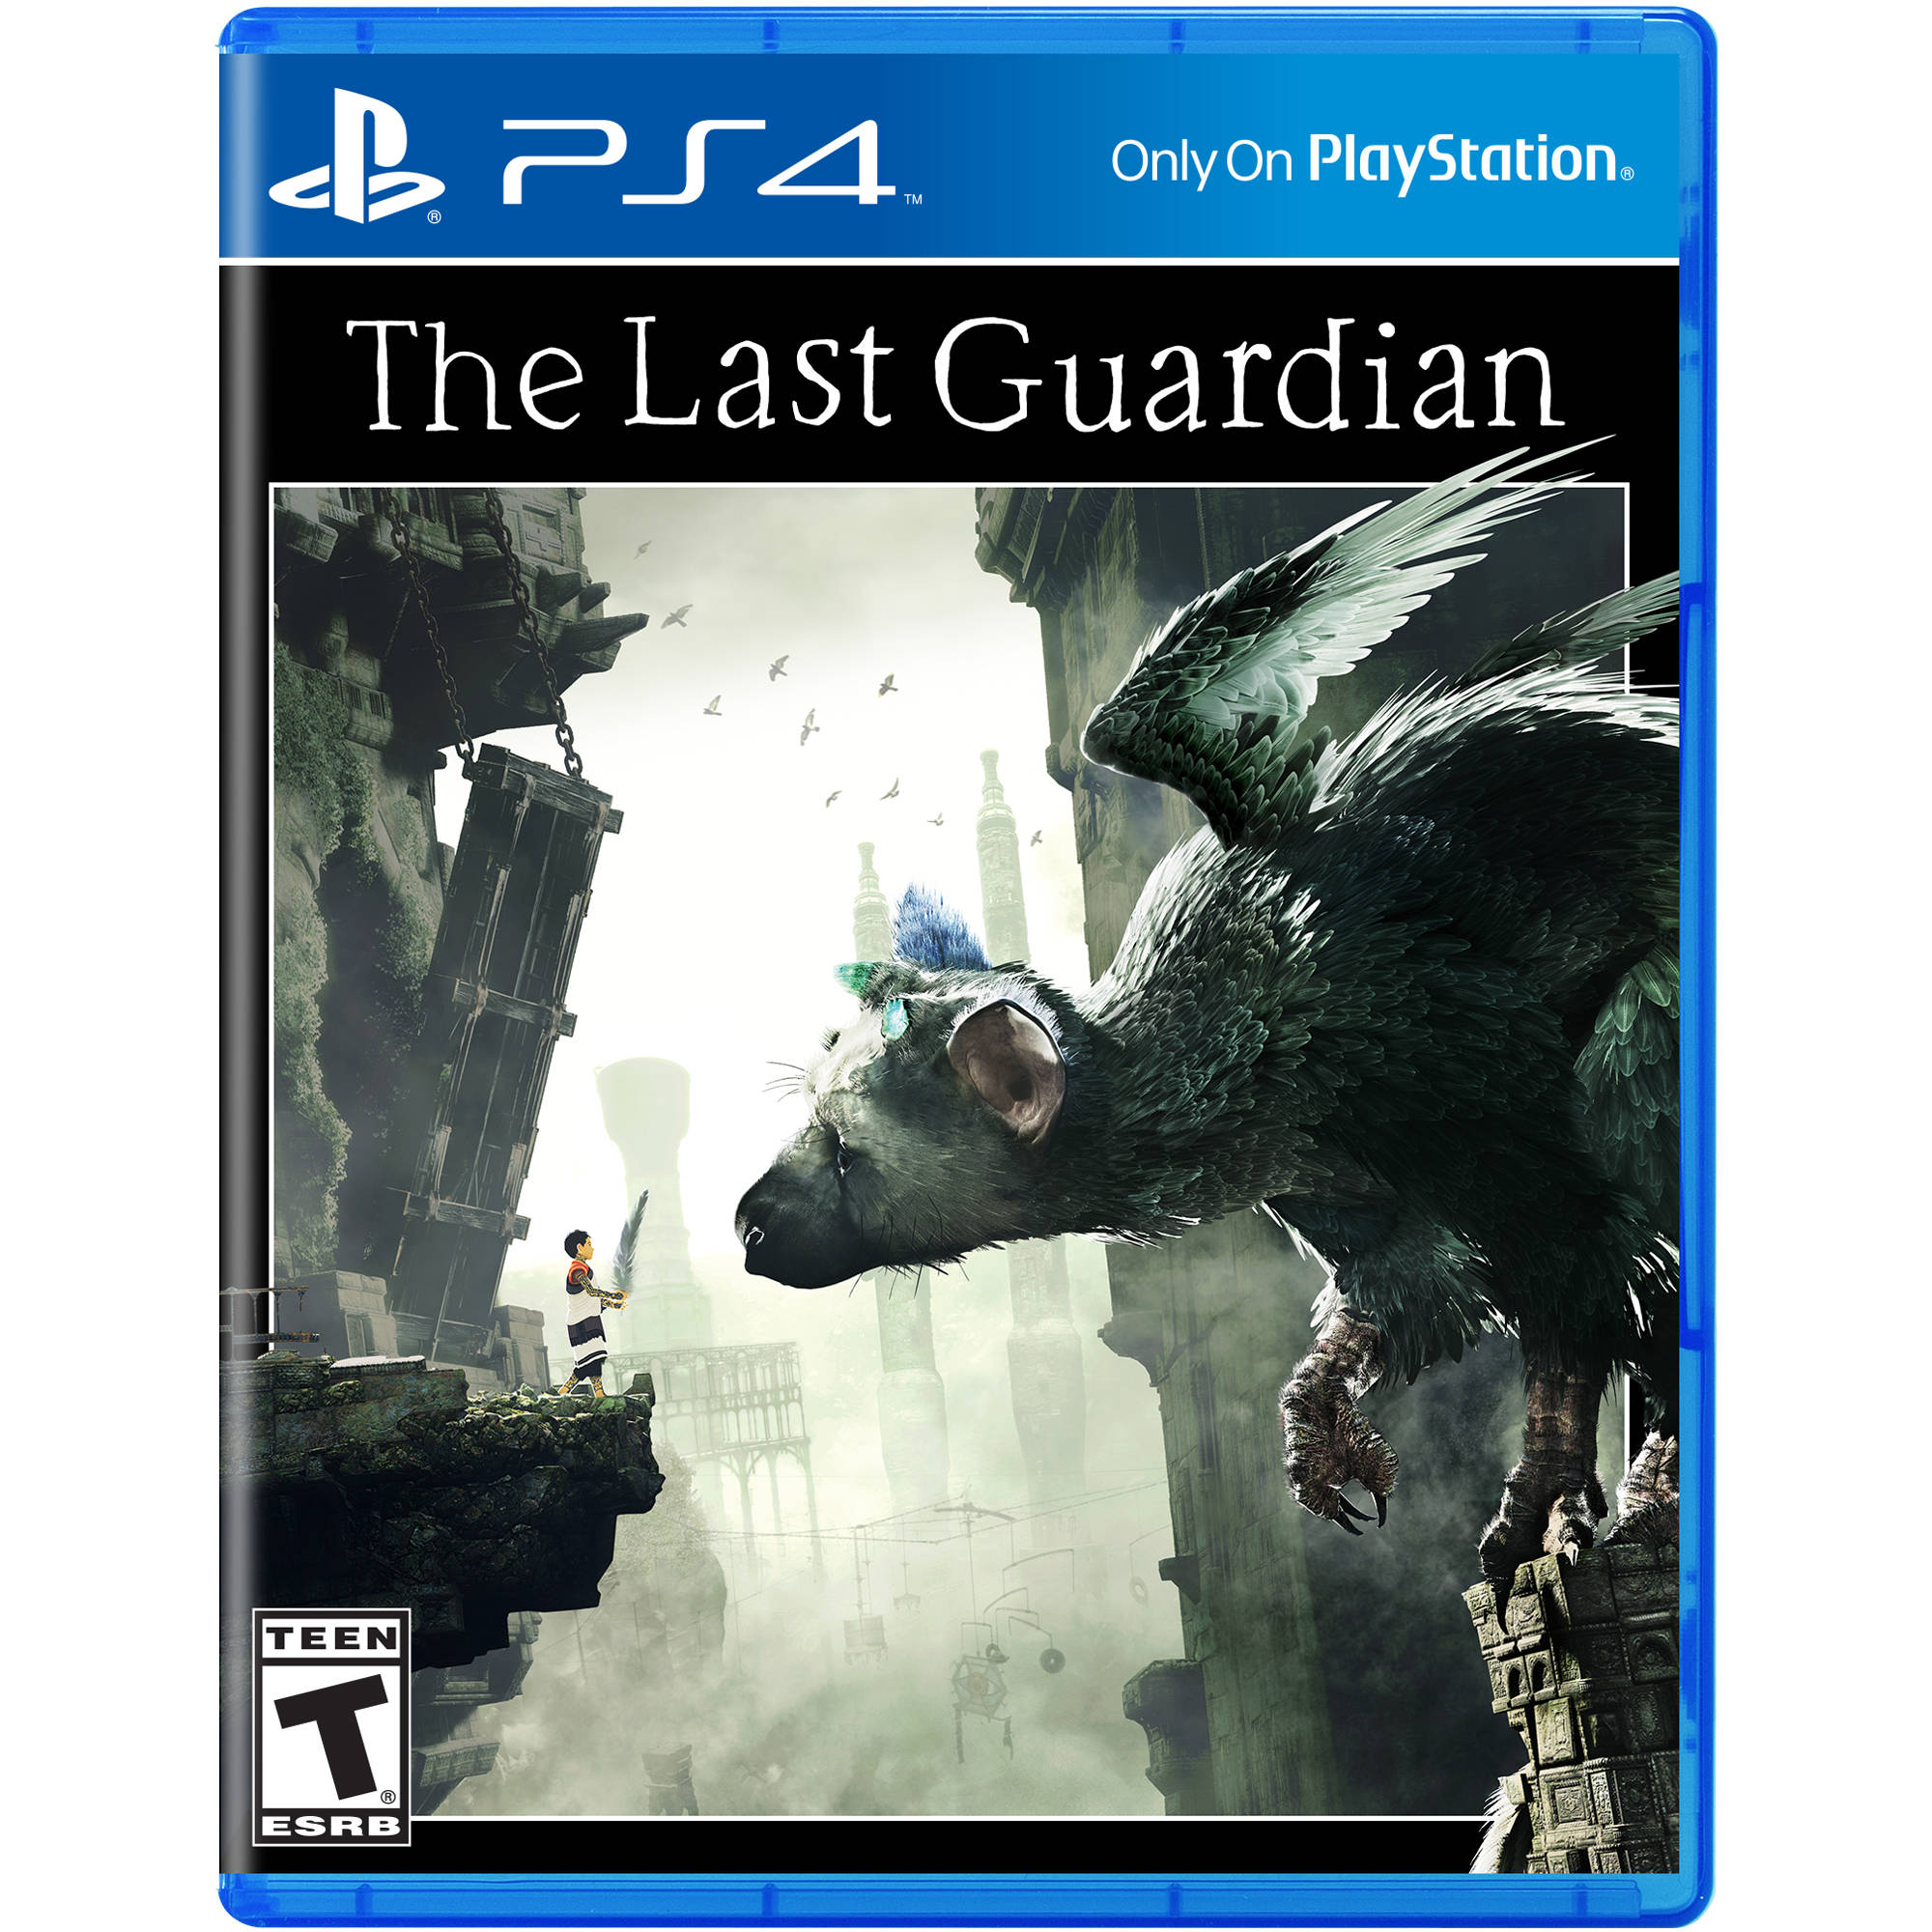 Sony-Playstation-The-Last-Guardian-Game